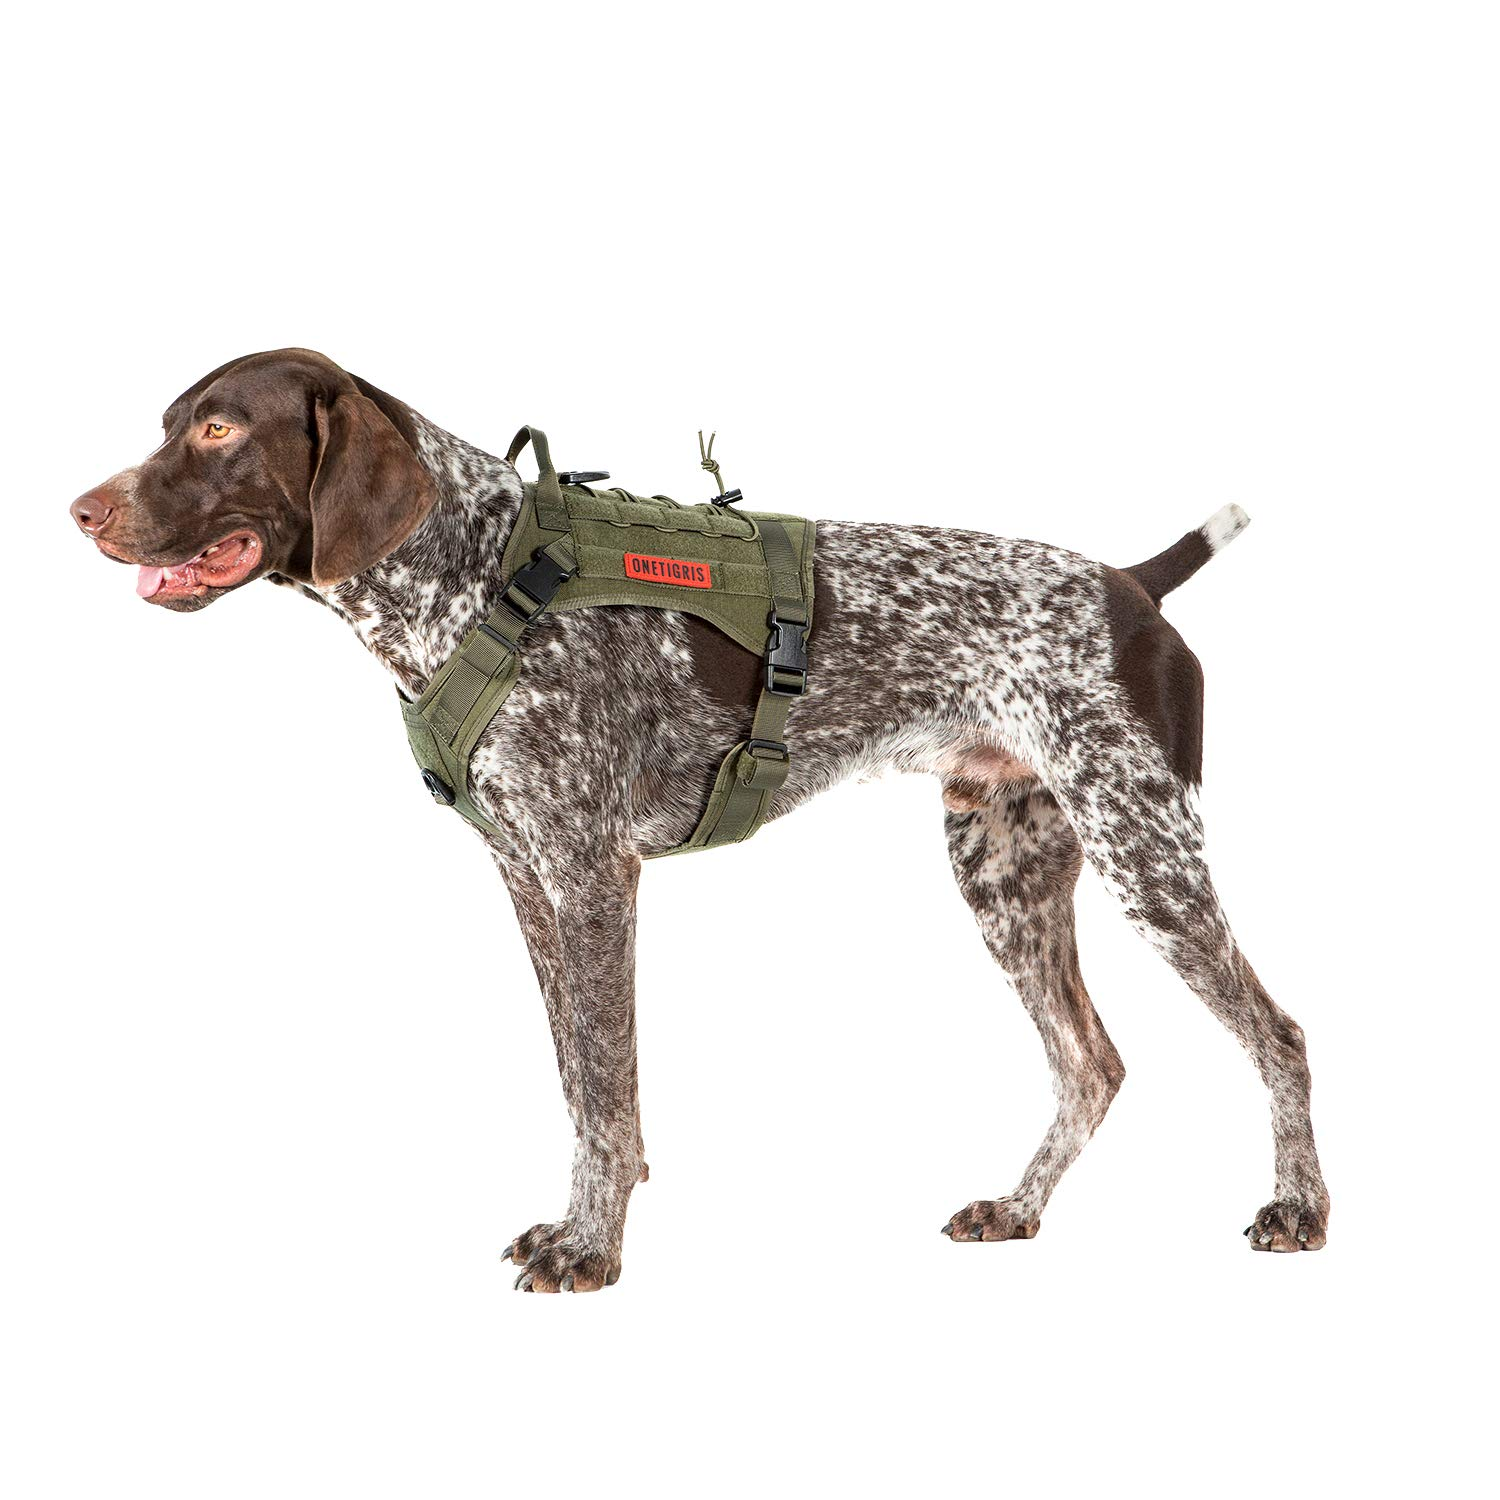 OneTigris Tactical Service Dog Vest - Water-Resistant Comfortable Military Patrol K9 Dog Harness with Handle (Medium, Ranger Green) by OneTigris